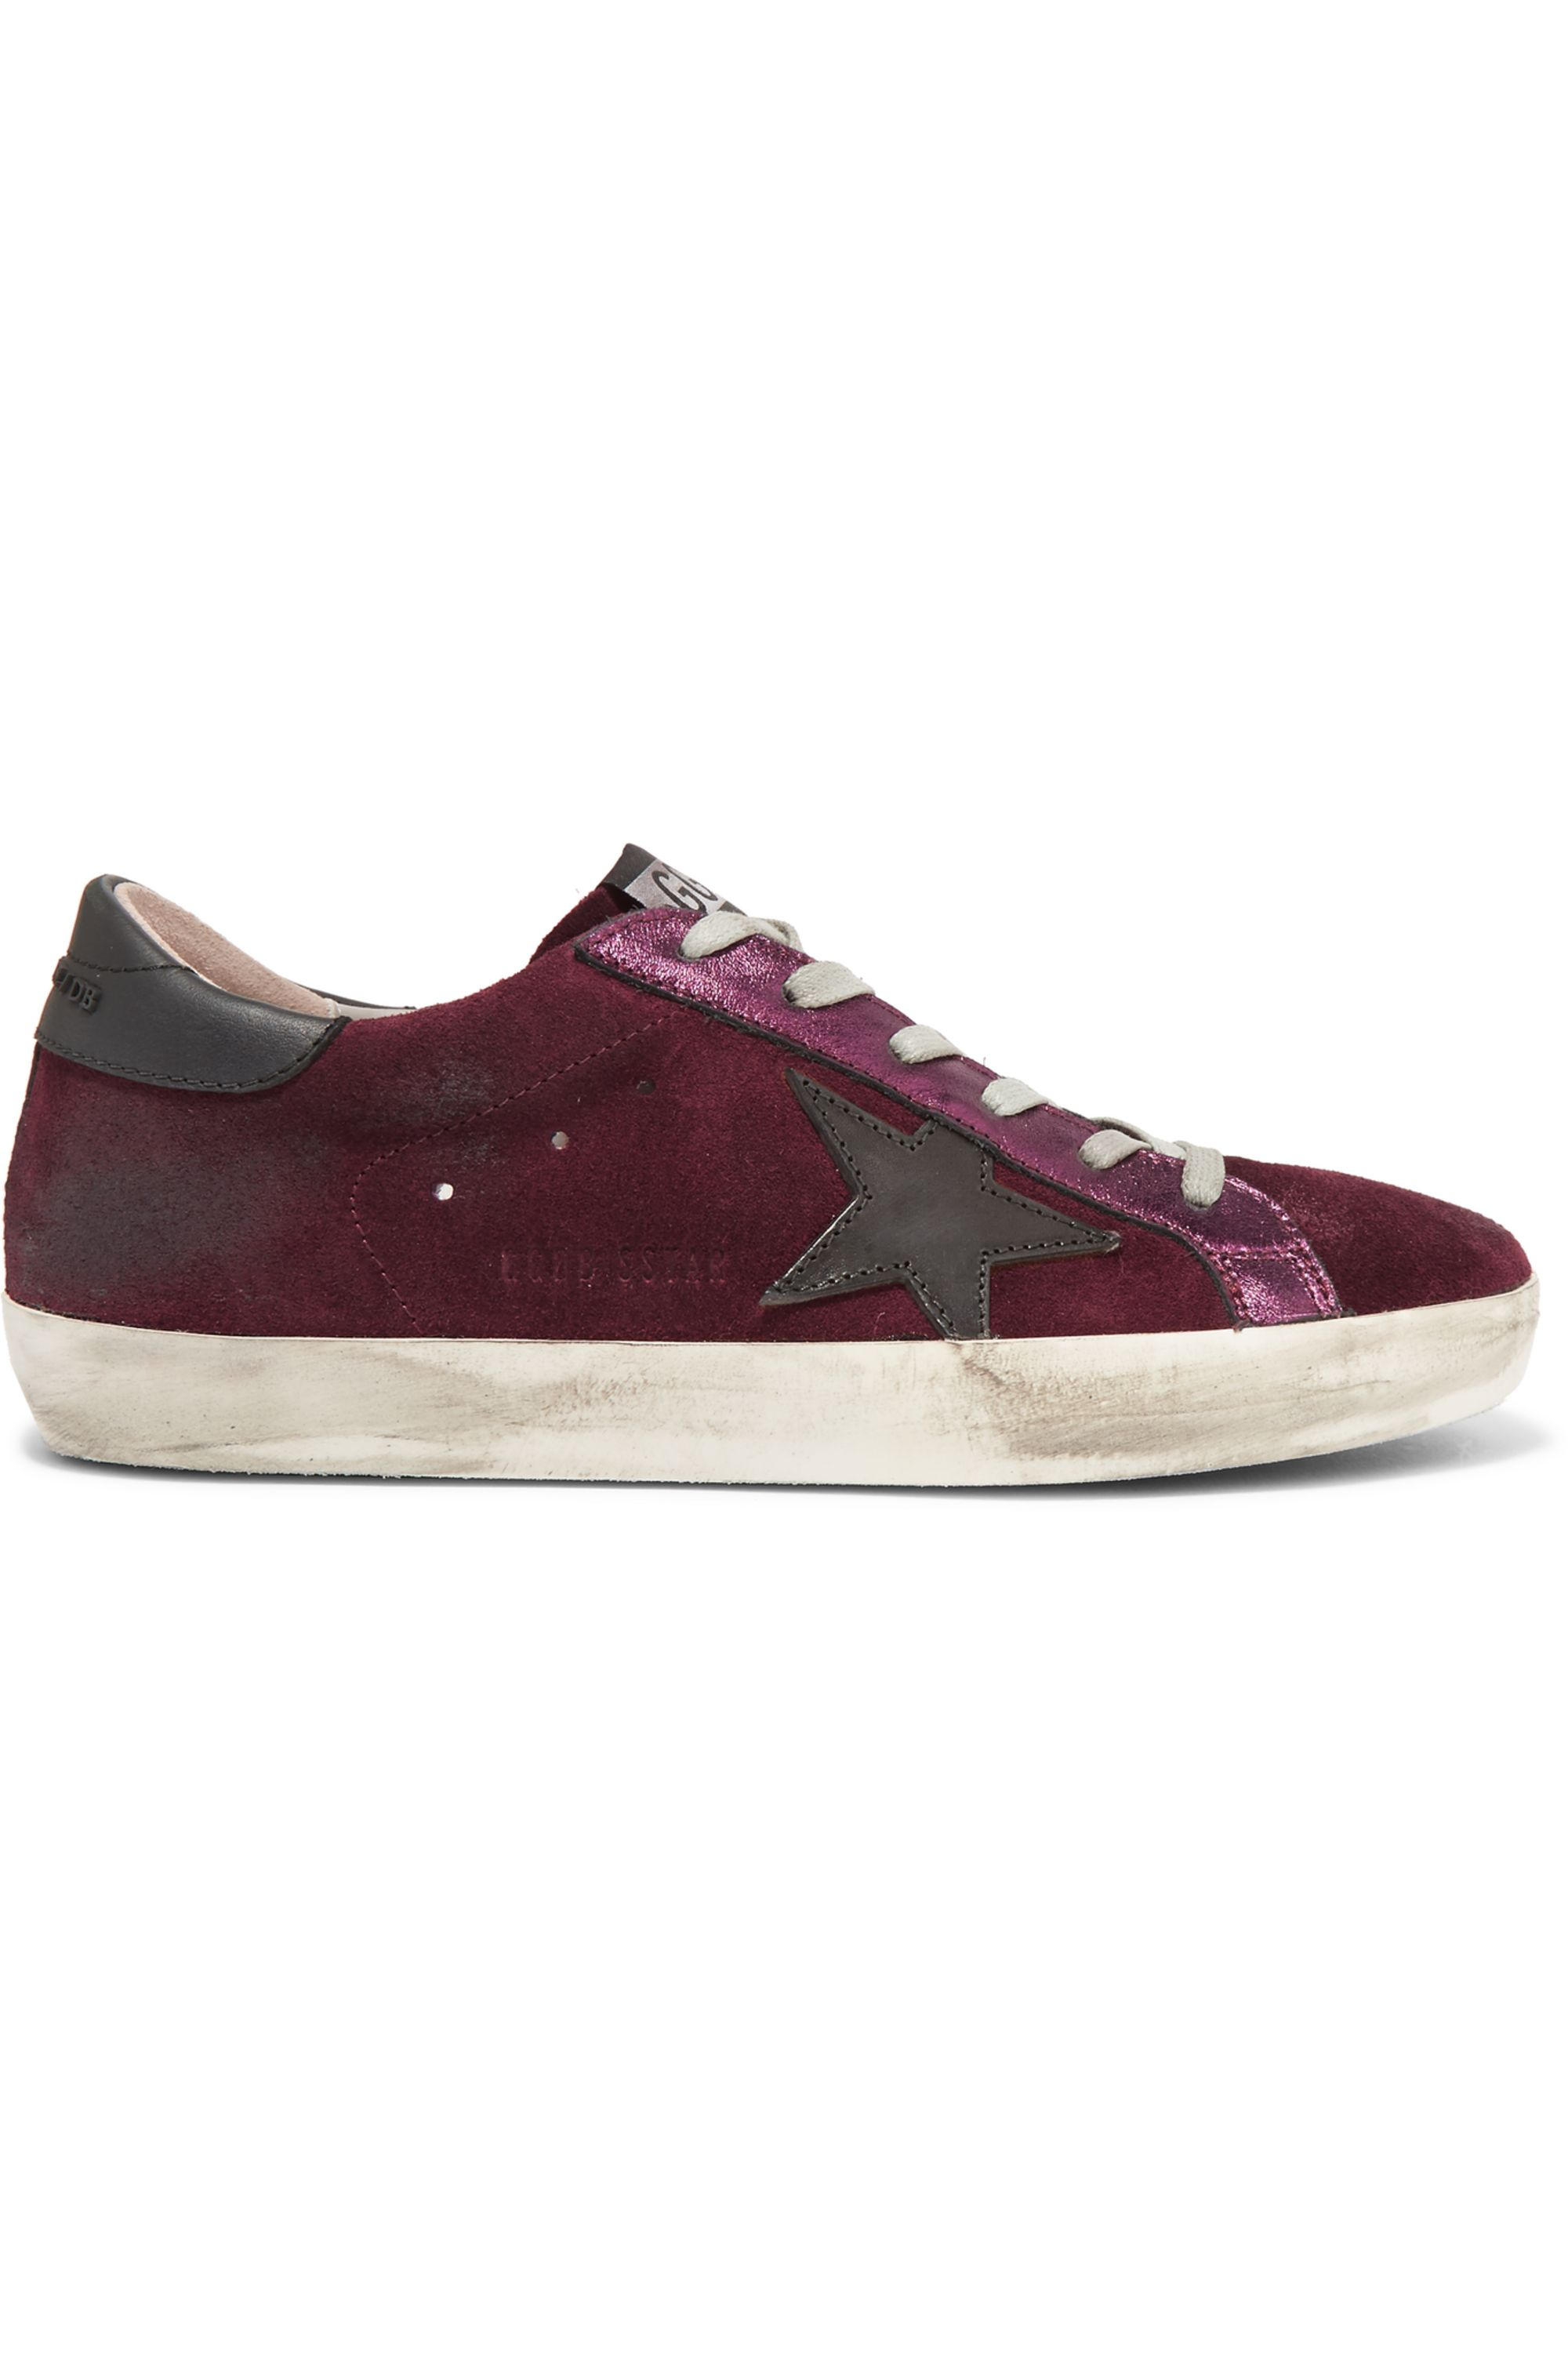 metallic leather-paneled suede sneakers